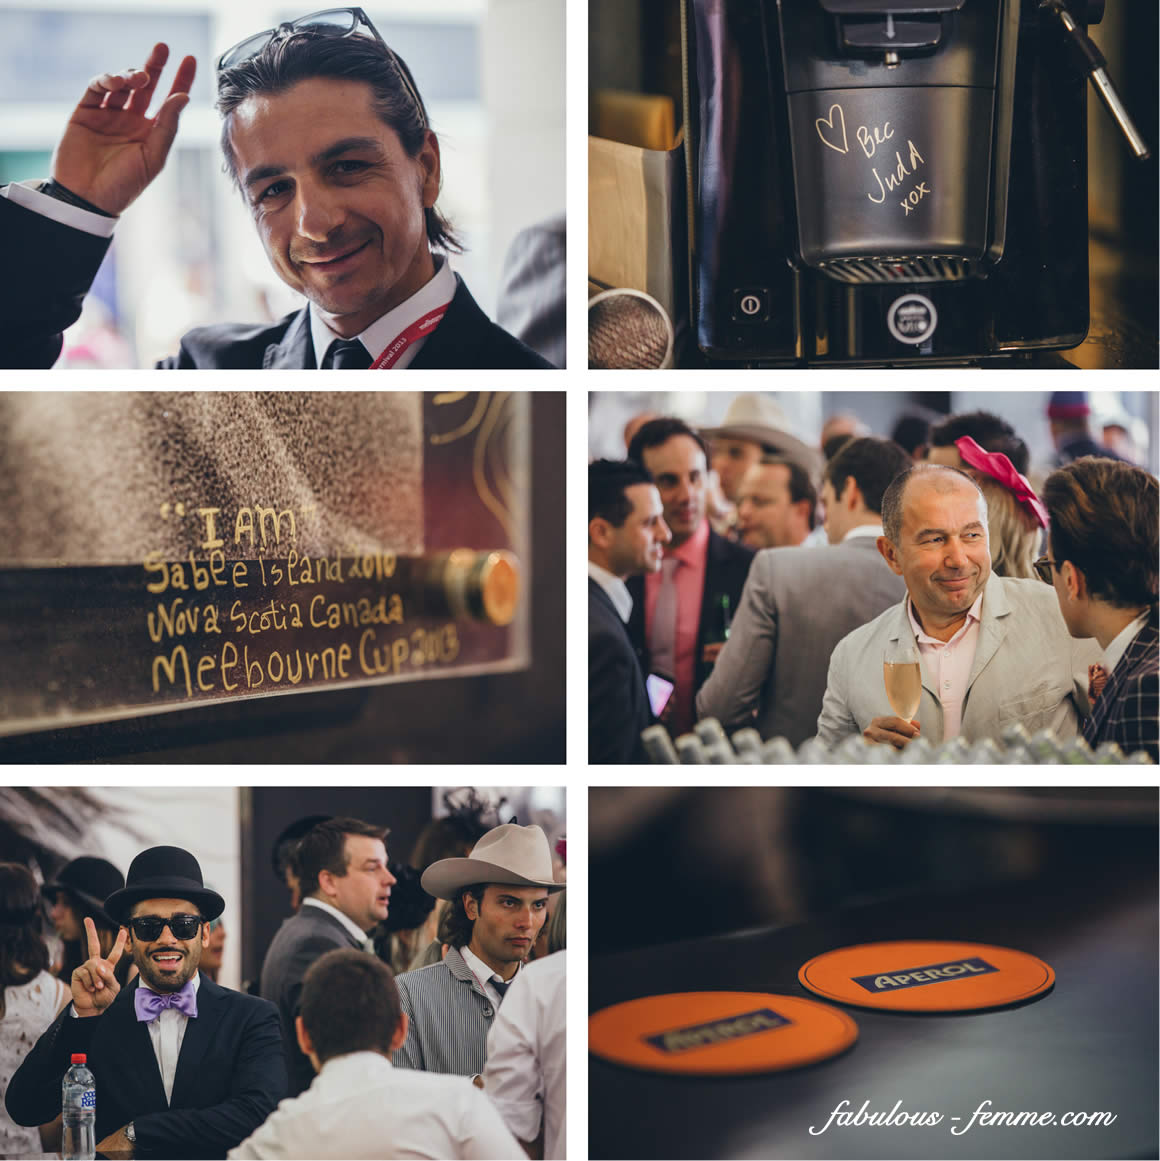 the lavazza marquee at the melbourne cup 2014